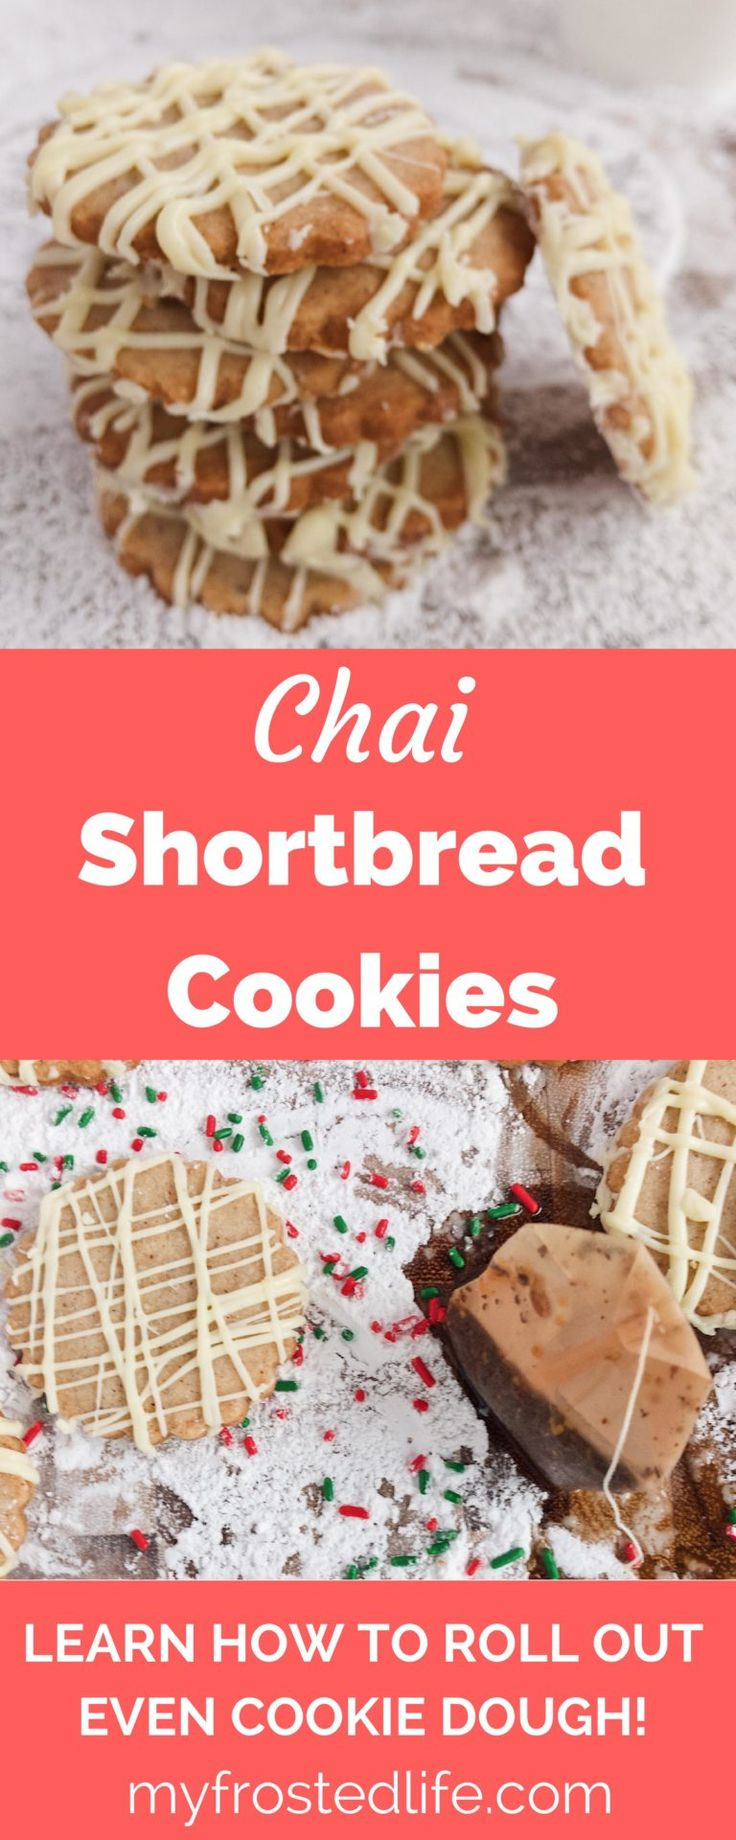 Chai Shortbread Cookies – These homemade cookies take traditional shortbread and combines them with the spices of chai tea to produce a unique cookie that is perfect for your holiday cookie tray or exchange. These rolled buttery shortbread cookies are easy to make and melt in your mouth. No holiday or Christmas is complete without a platter or display of festive, from scratch cookie. Get the recipe and learn how to roll out cookie dough evenly and without it sticking to your rolling pin!